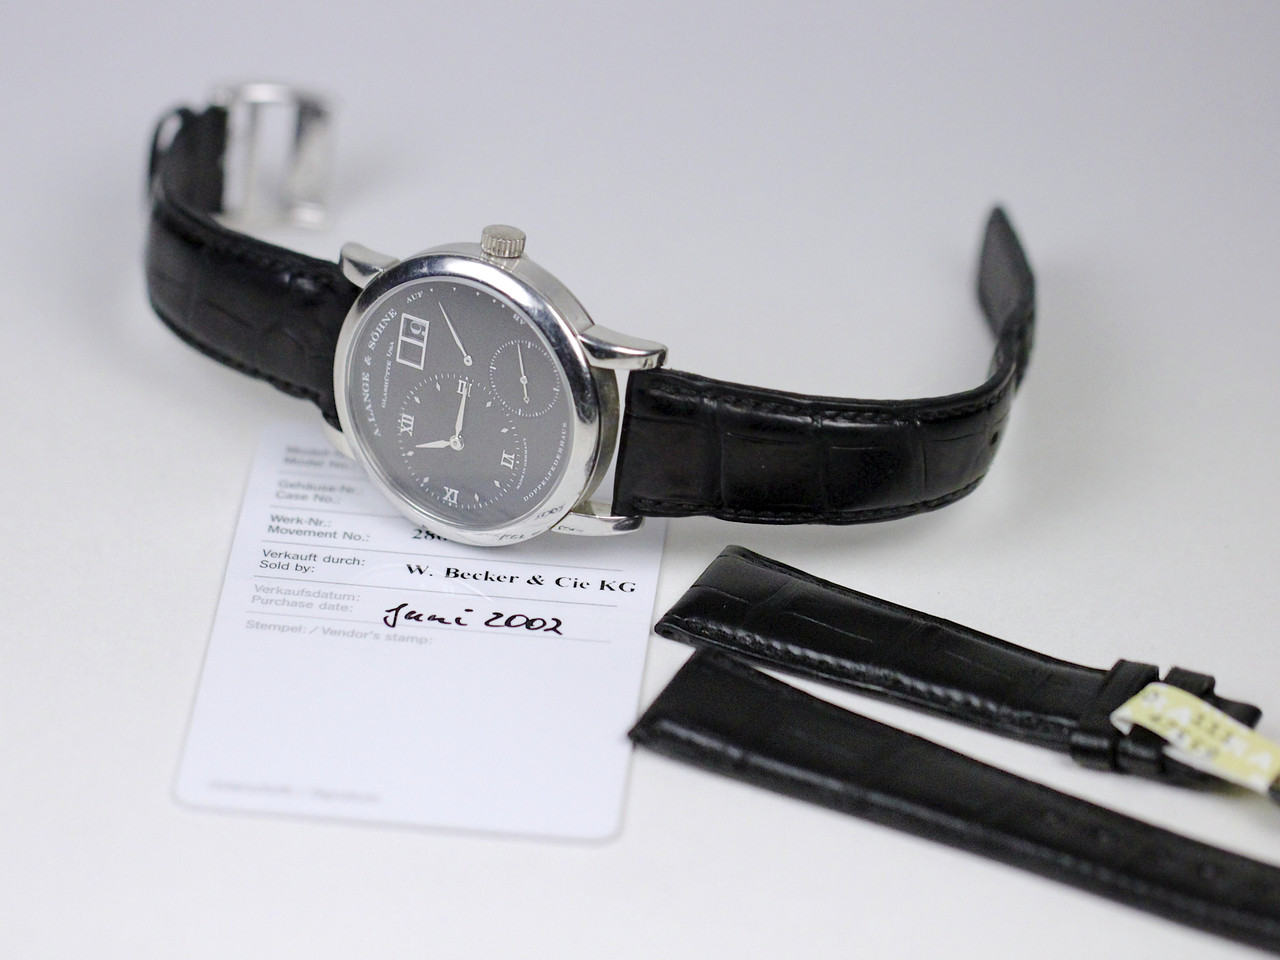 Warranty Card & New Leather strap - A Lange & Sohne Watch - Lange 1 Black Darth Dial 101.035 pre-owned for sale Legend of Time - Chicago Watch Center